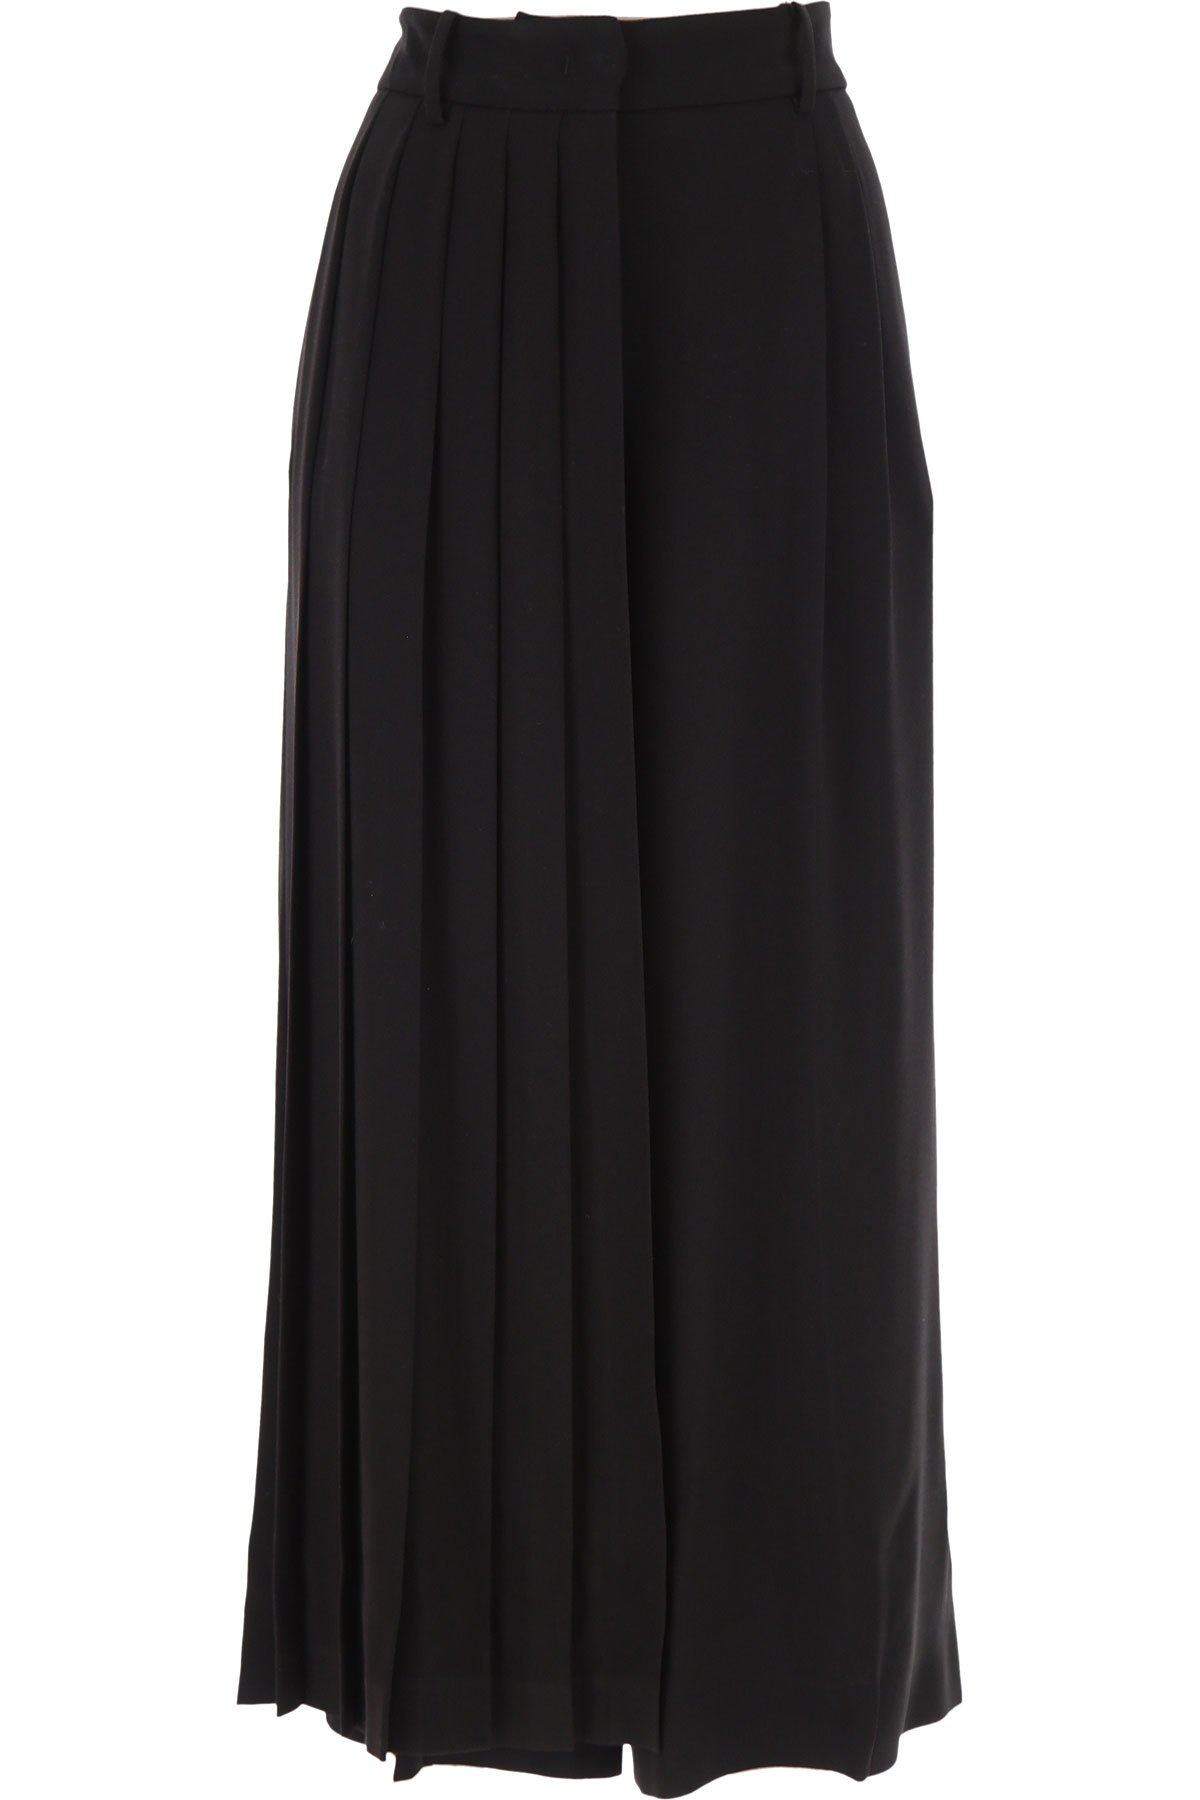 Max Mara Pants for Women On Sale, Black, acetate, 2019, 30 6 8